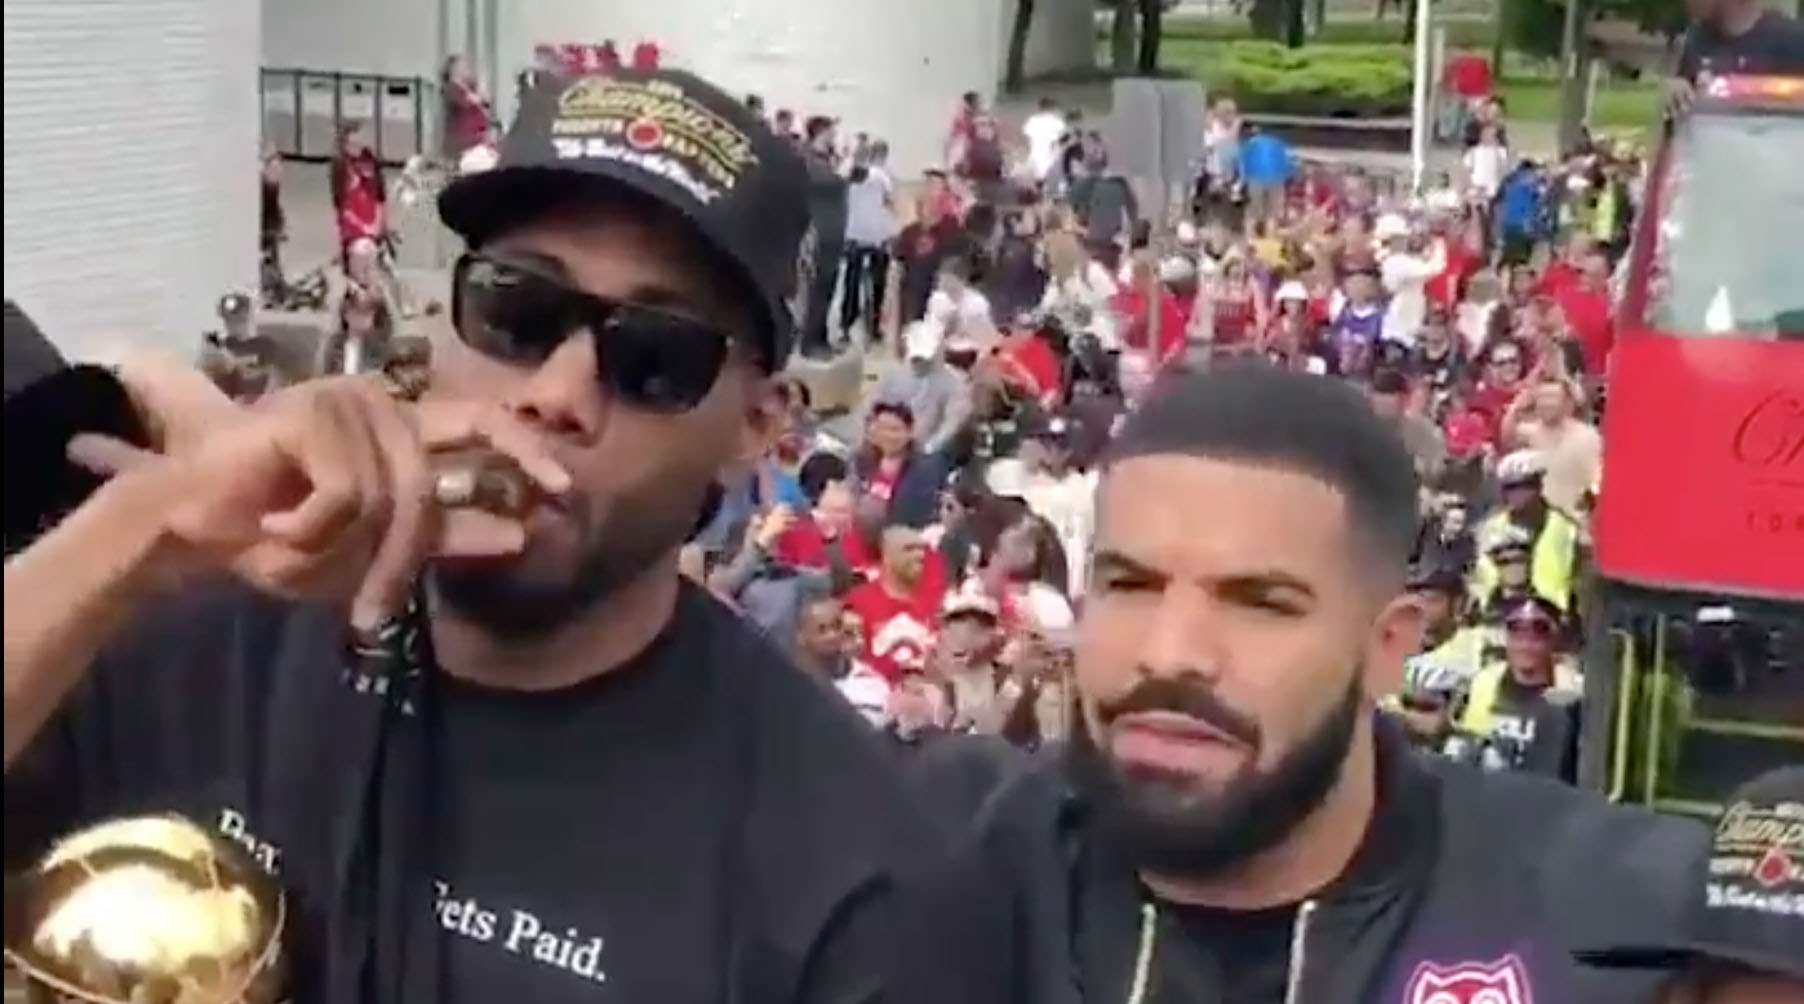 Raptors parade highlights